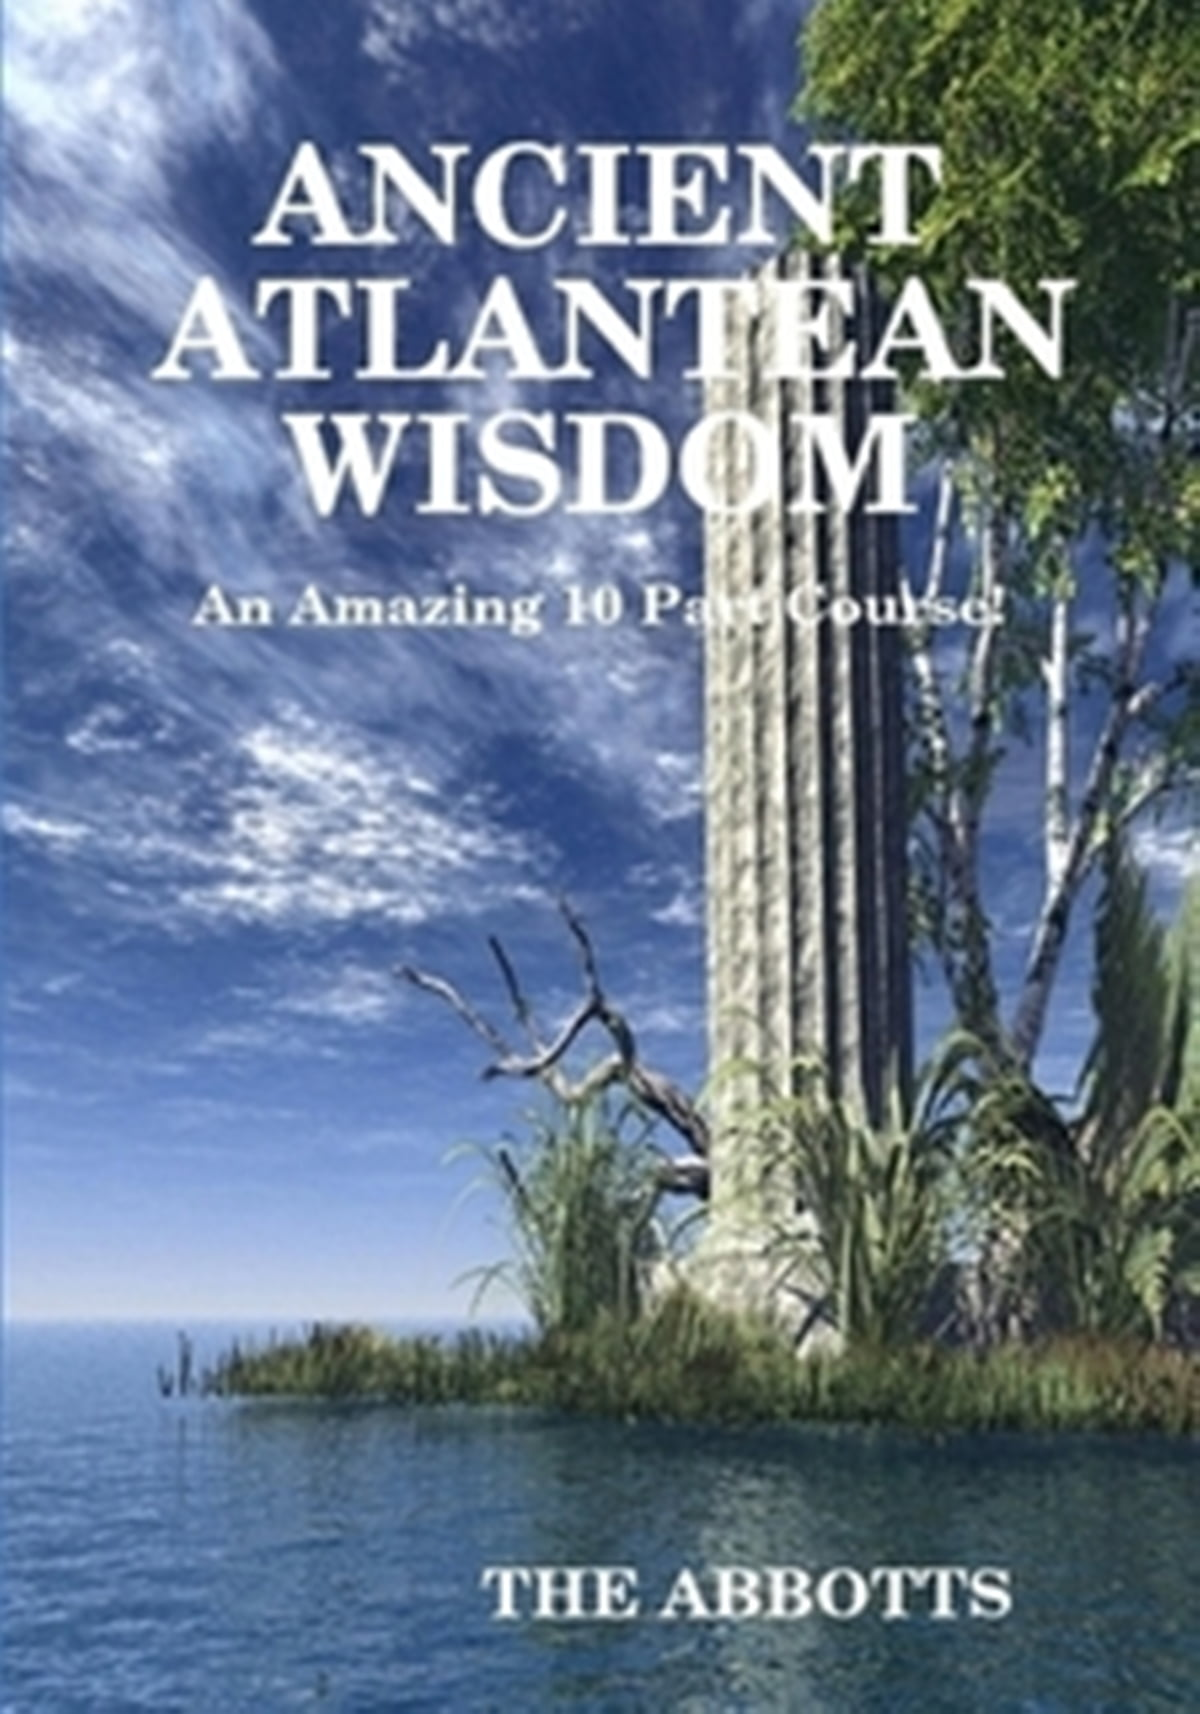 Ancient Atlantean Wisdom: An Amazing 10 Part Course ebook by The Abbotts -  Rakuten Kobo